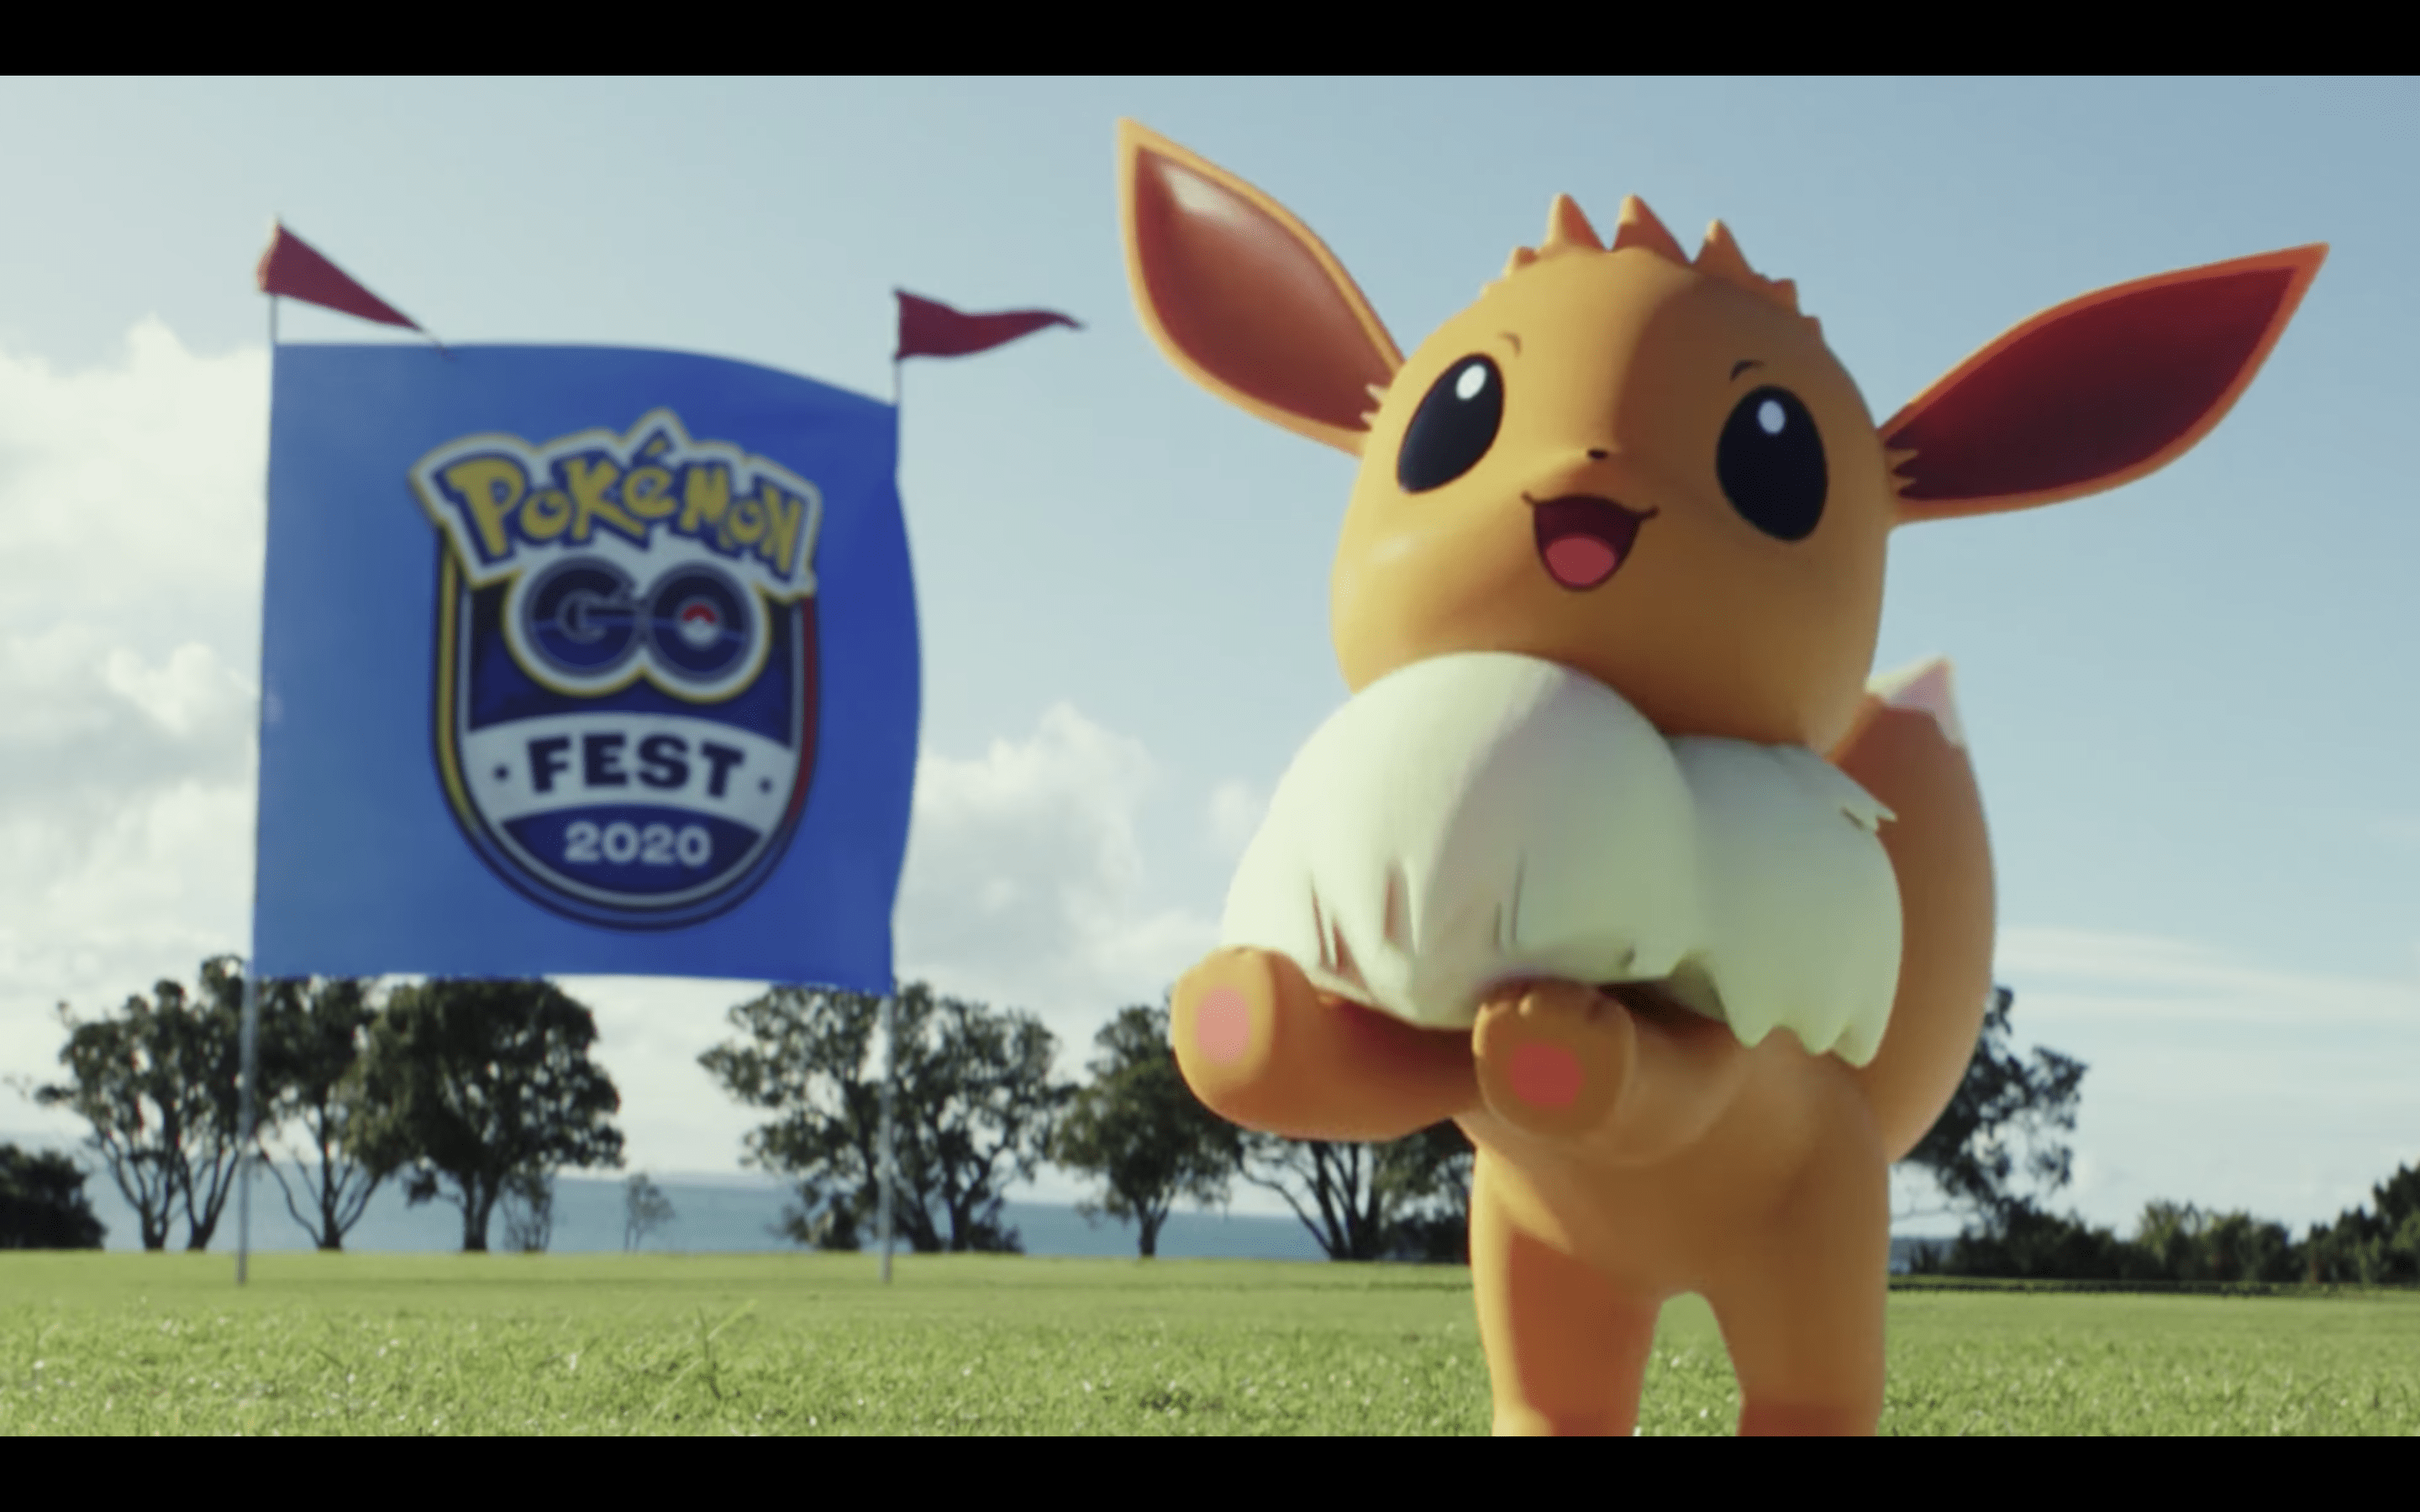 Pokemon GO Fest Trailer Released.